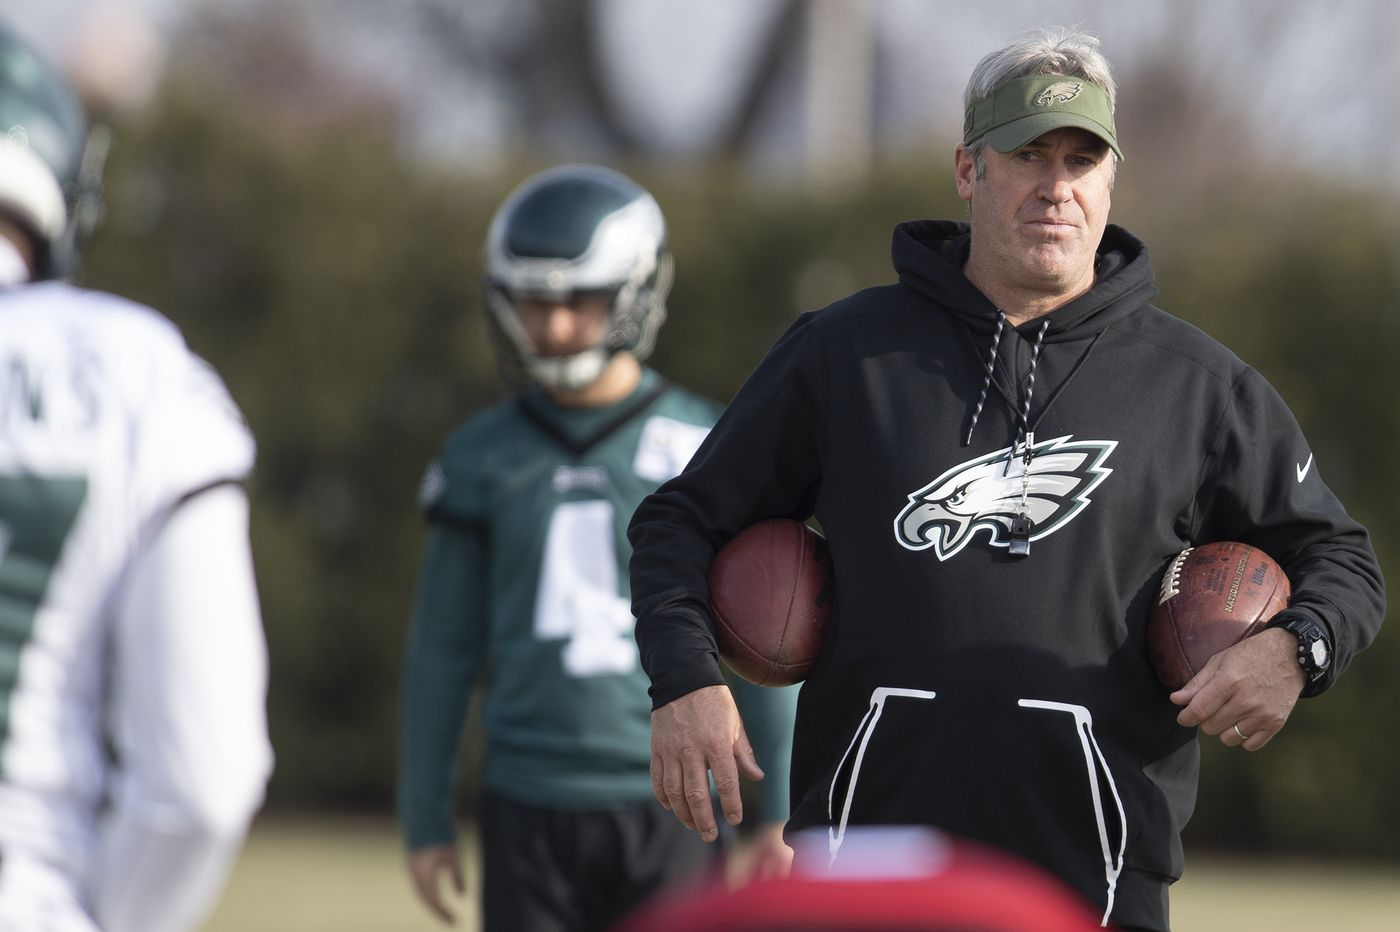 Doug Pederson made the Eagles look amateurish in discussing Carson Wentz's back injury   Marcus Hayes